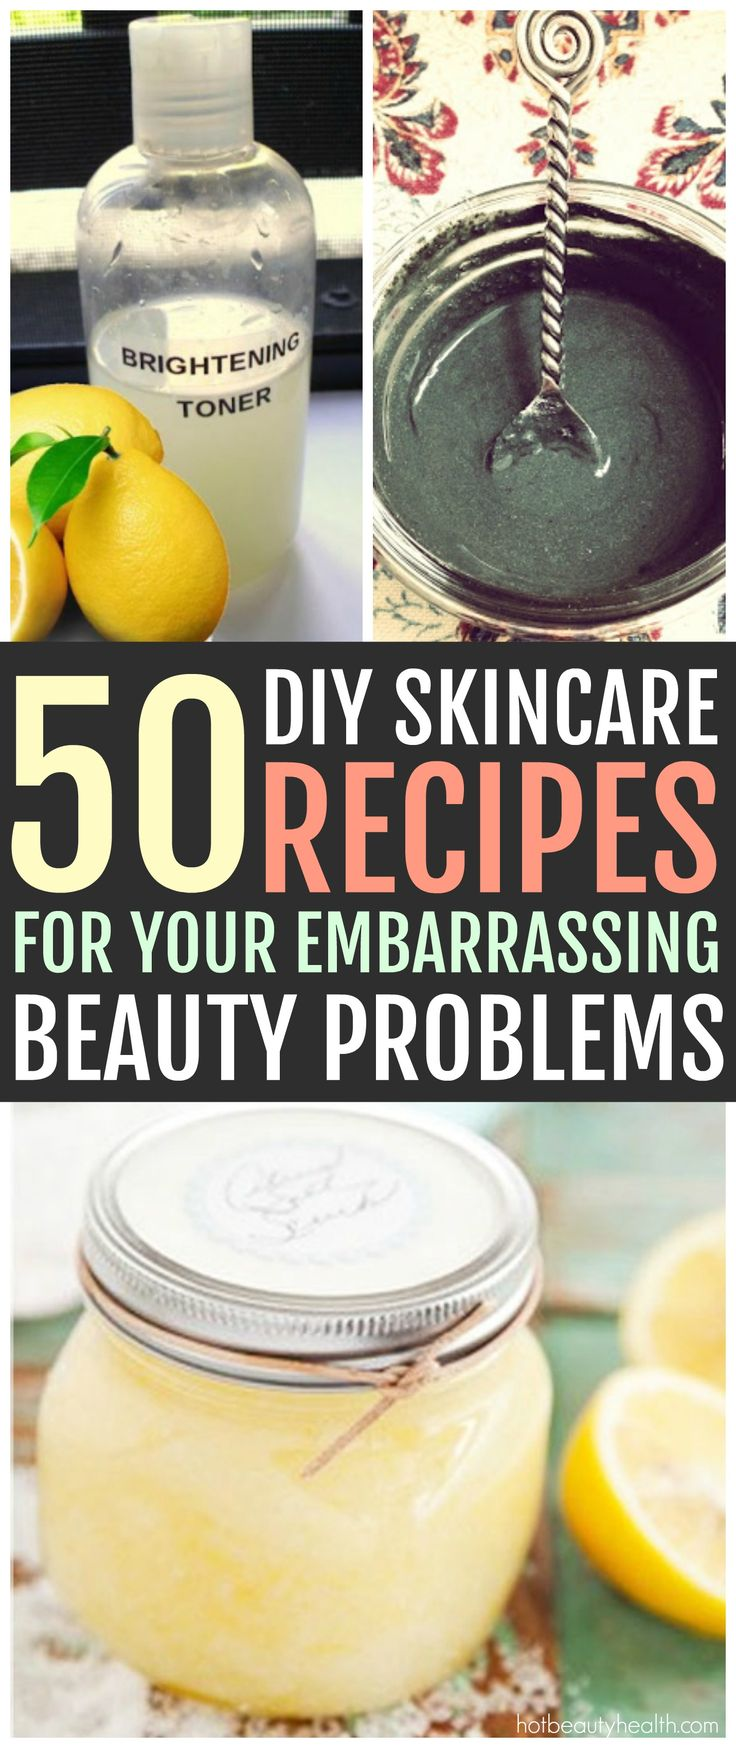 Check out these 50 DIY homemade skin care recipes made from simple kitchen ingredients! Huge list of beauty recipes (i.e. scrubs, toners, lip balm, body butters, etc) for all skin types: acne-prone, oily, dry, anti-aging and normal. Hot Beauty Health #skincare #DIY #diyskincare